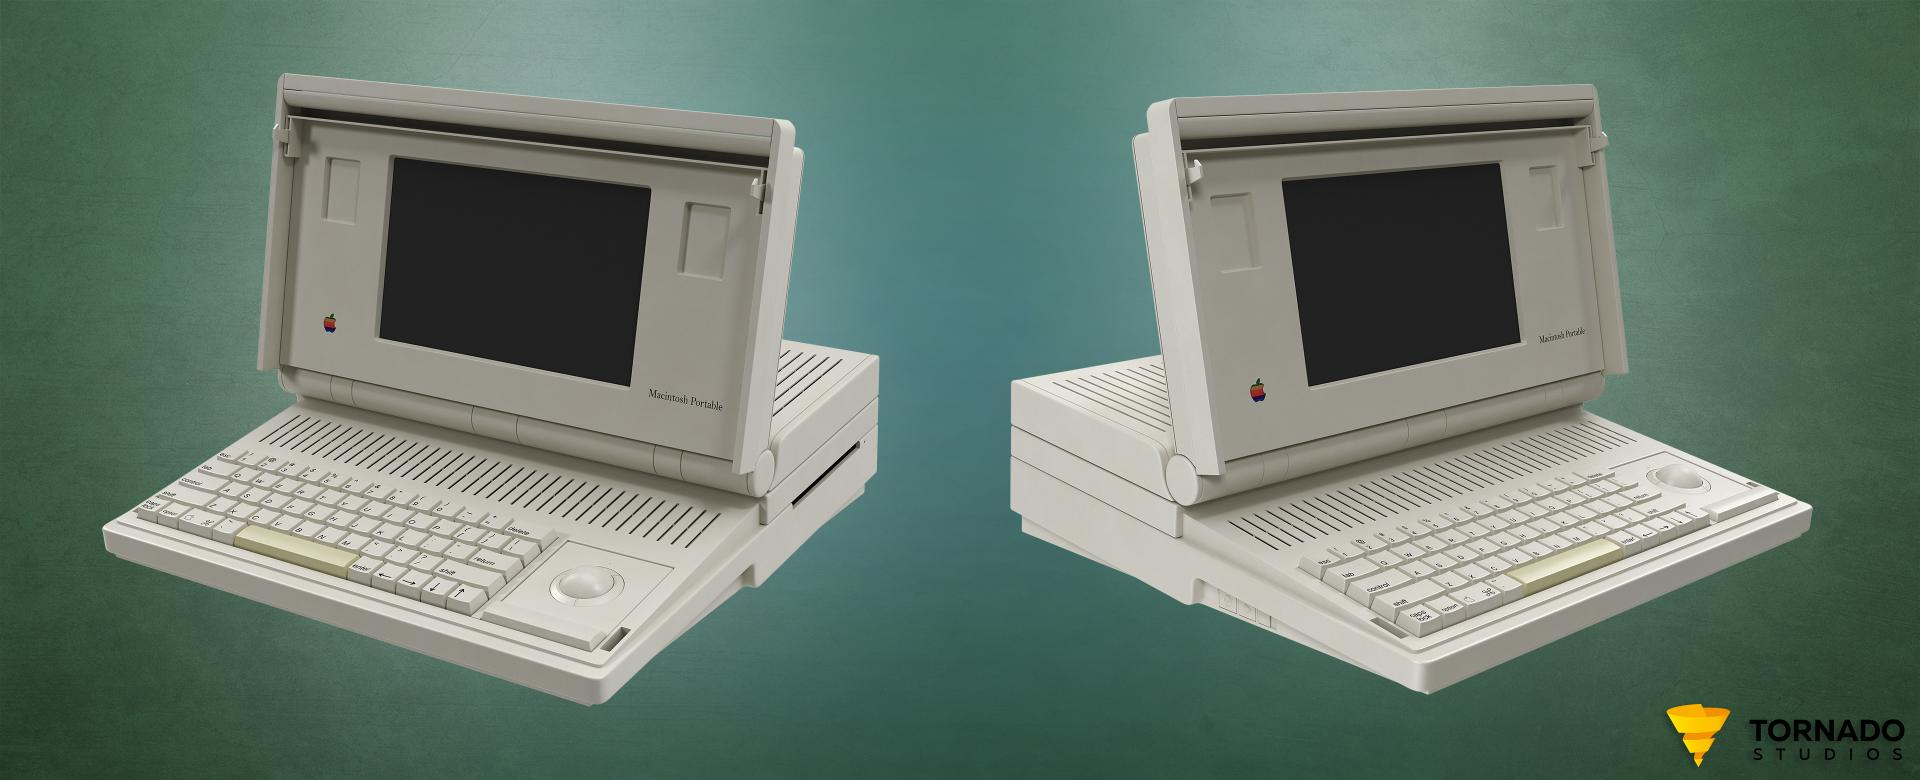 Apple Macintosh Portable